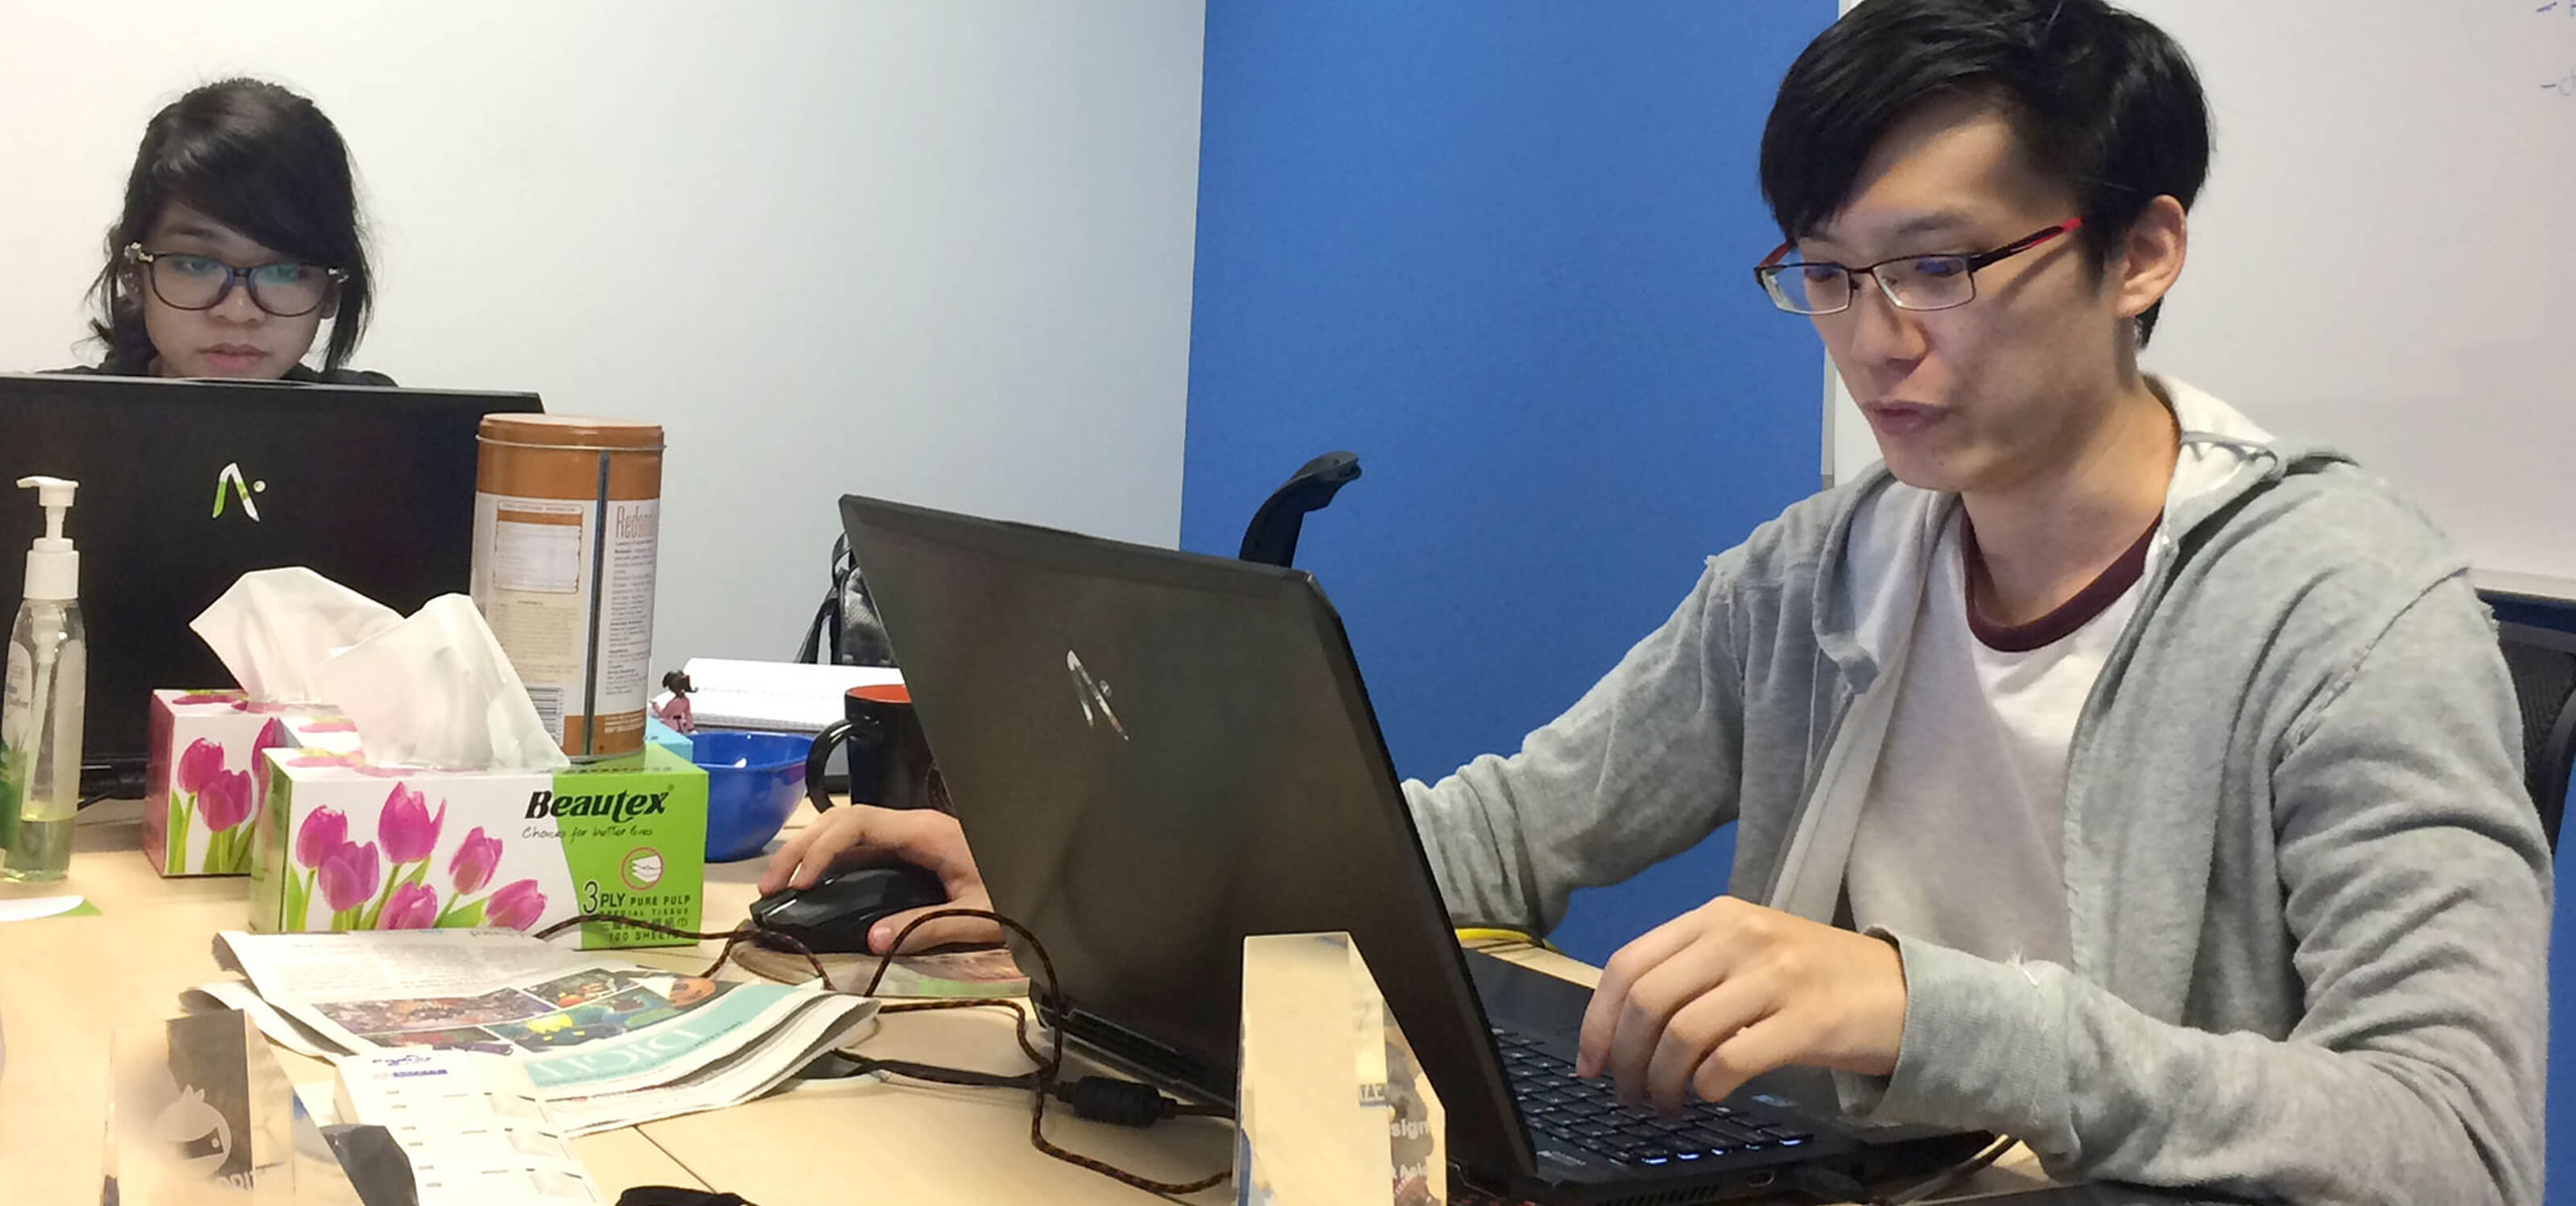 Alumnus Desmond Wong sits at a desk with a laptop computer surrounded by trinkets and awards